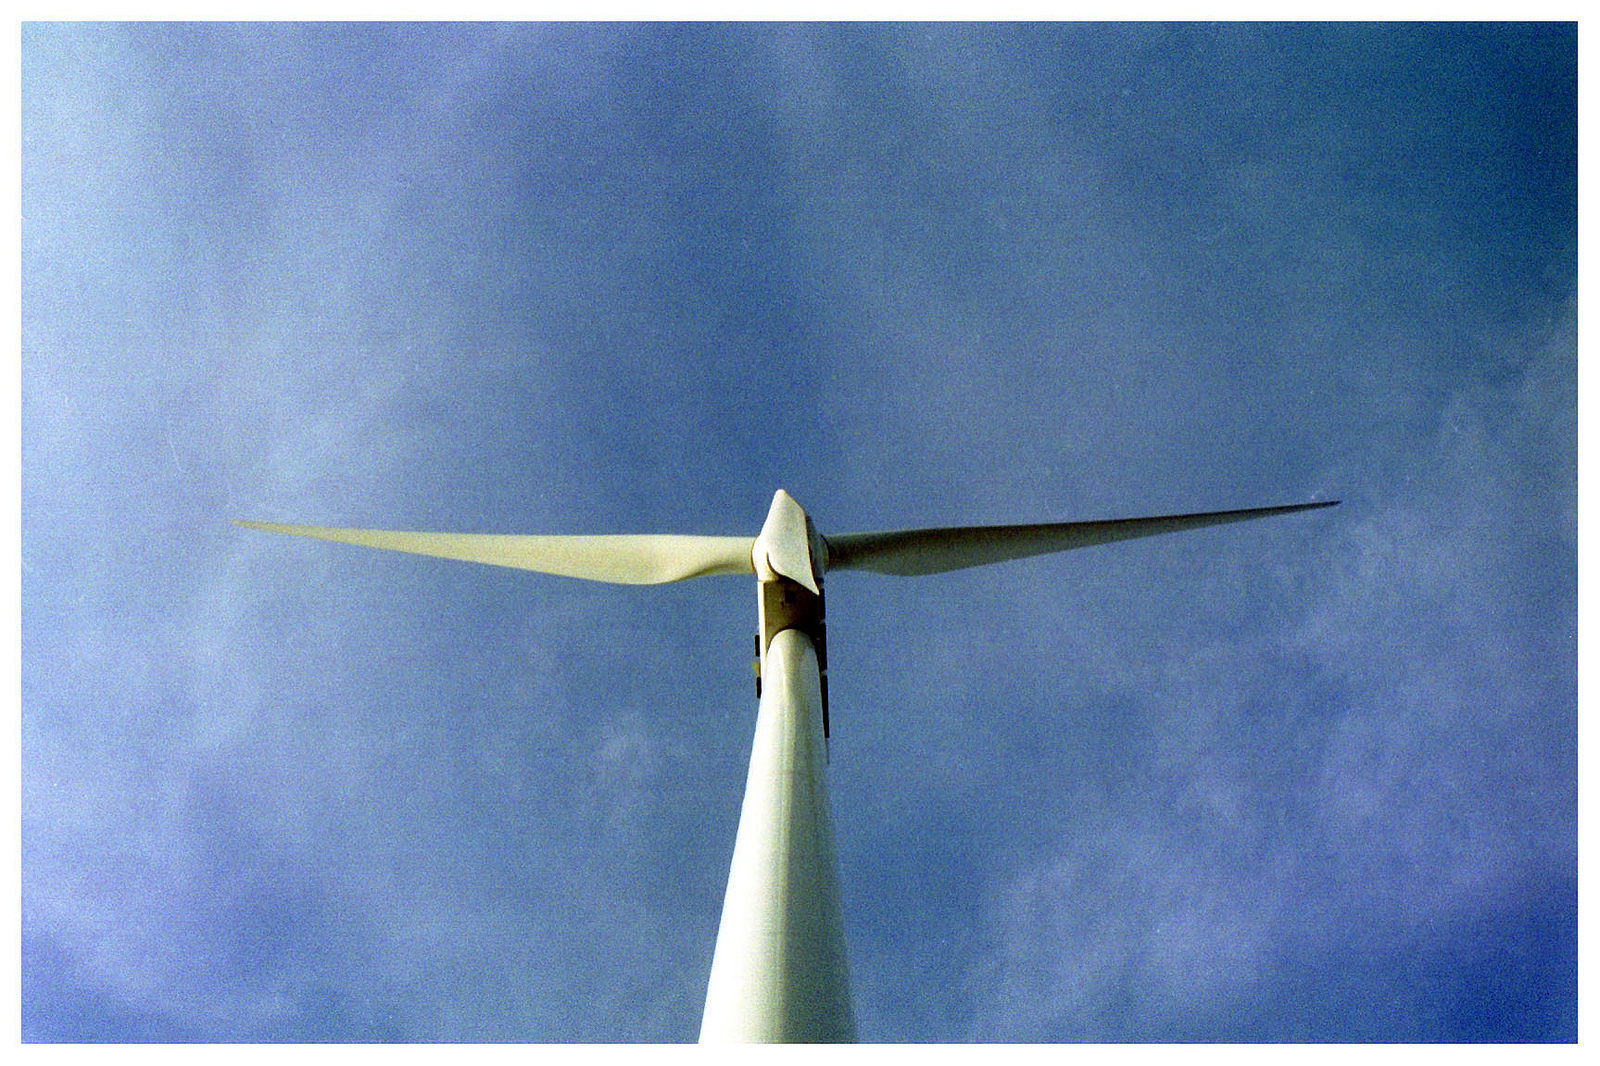 Lebanon aims for 12 percent renewable energy by 2020